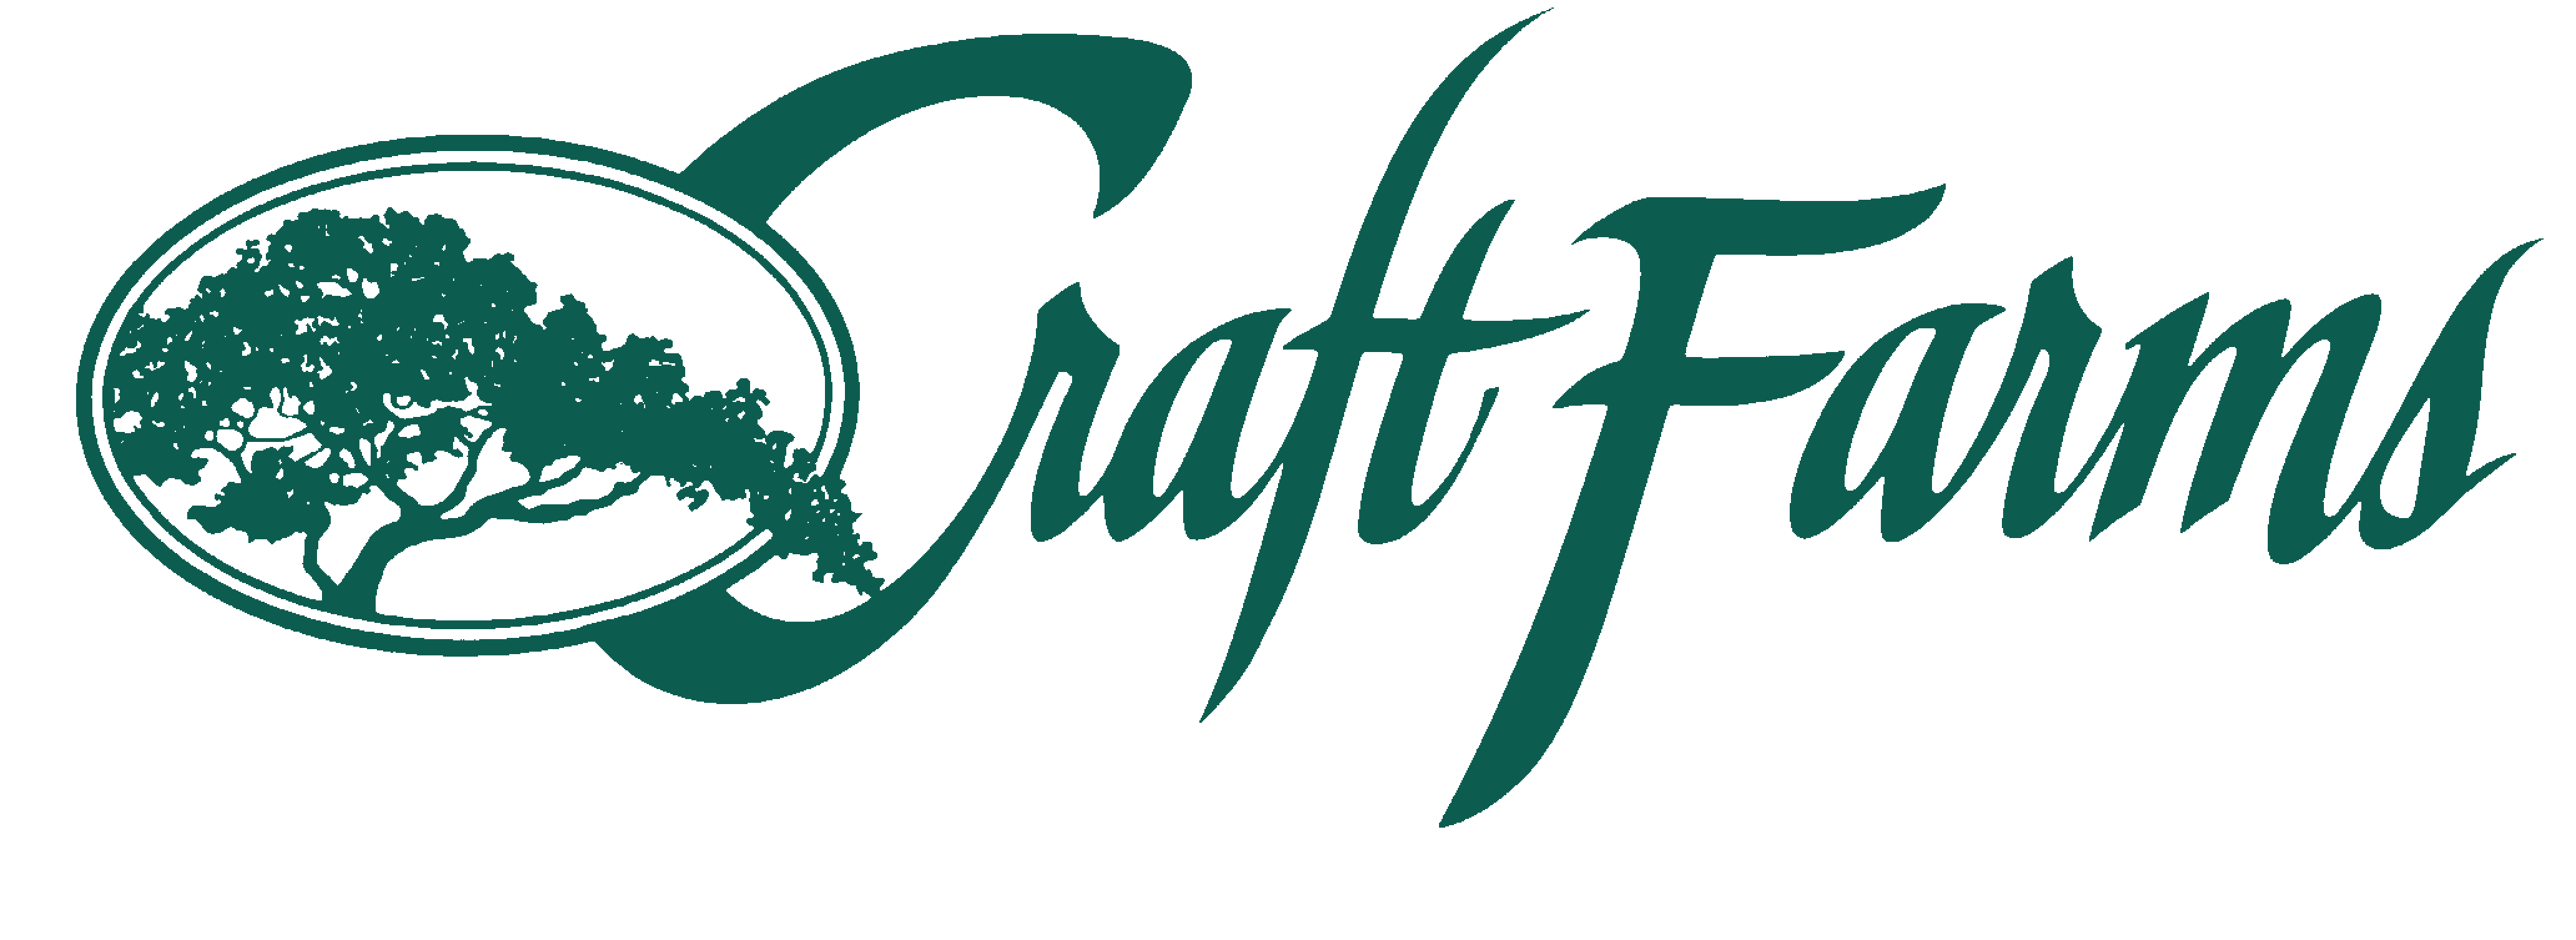 Craft Farms Golf Resort Q4 18's Logo